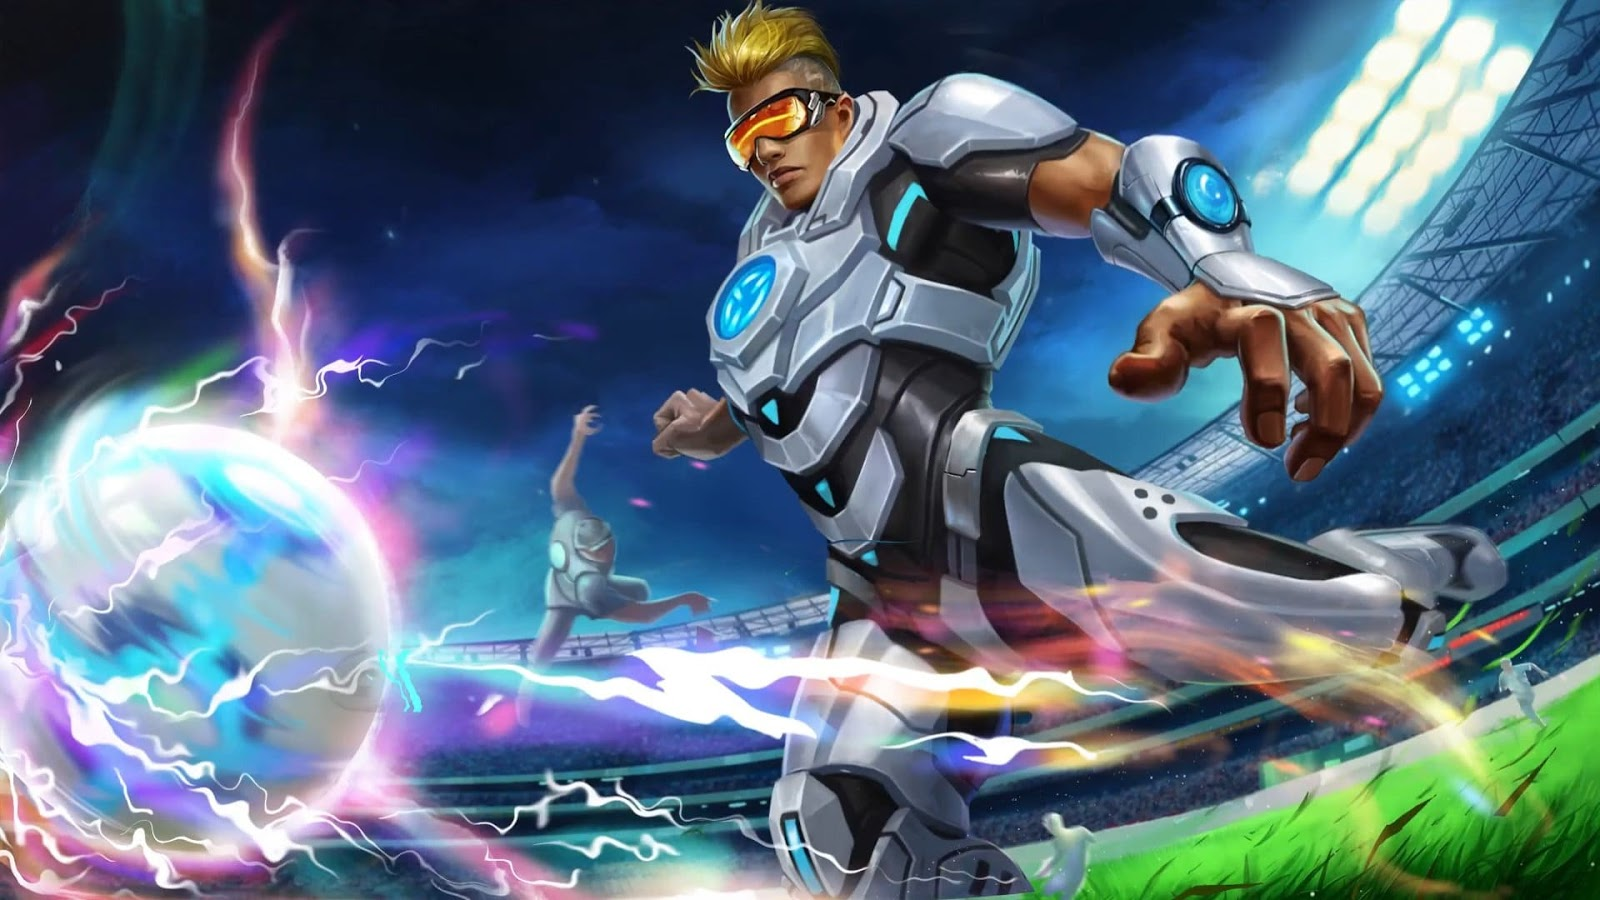 Wallpaper Bruno The Protector Skin Mobile Legends Full HD for PC